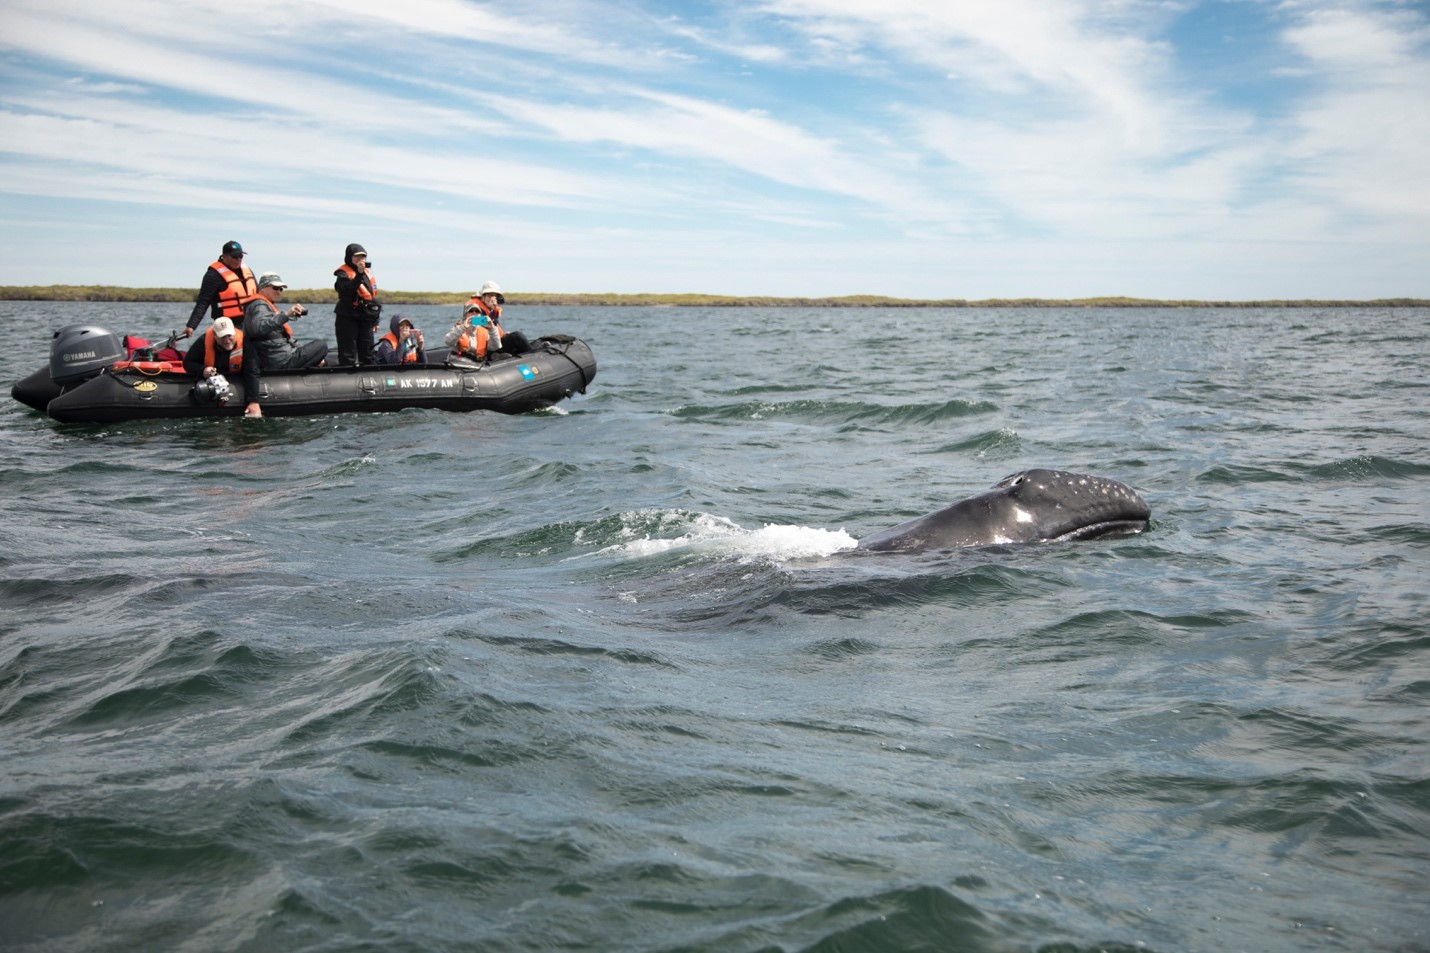 a young gray whale comes to the surface near a group of ecotourists